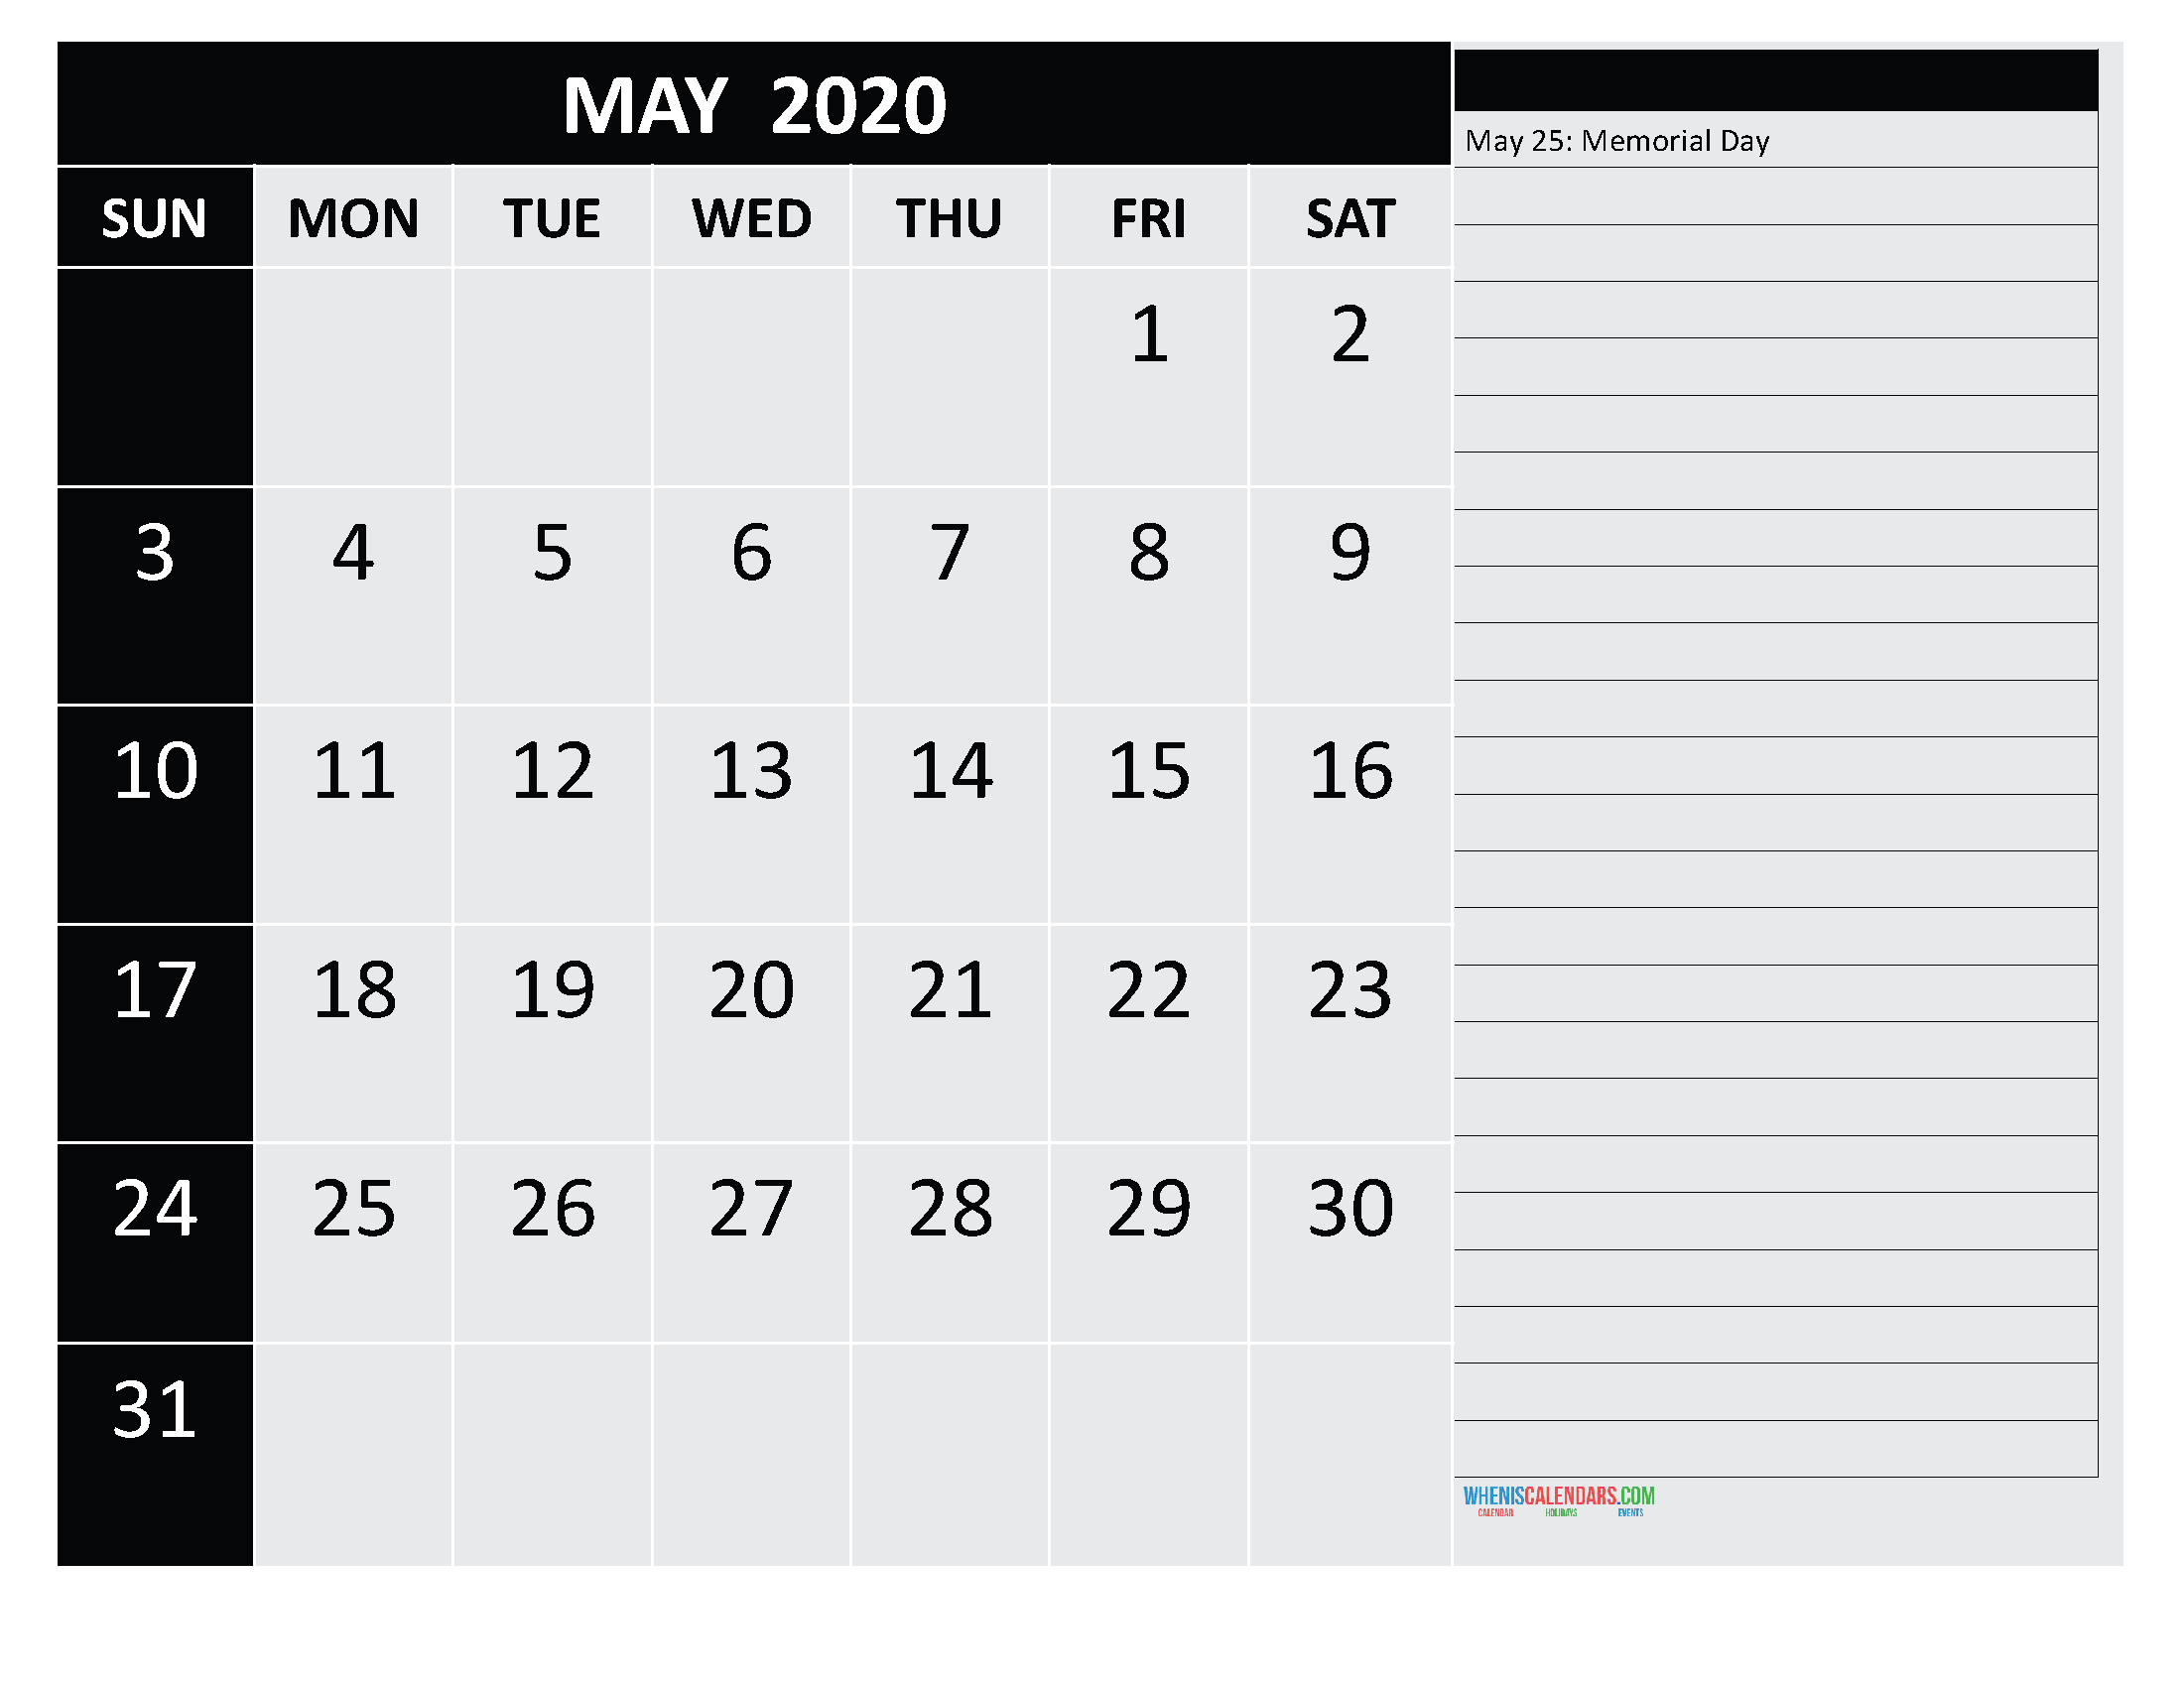 Free Monthly Printable Calendar 2020 May with Holidays